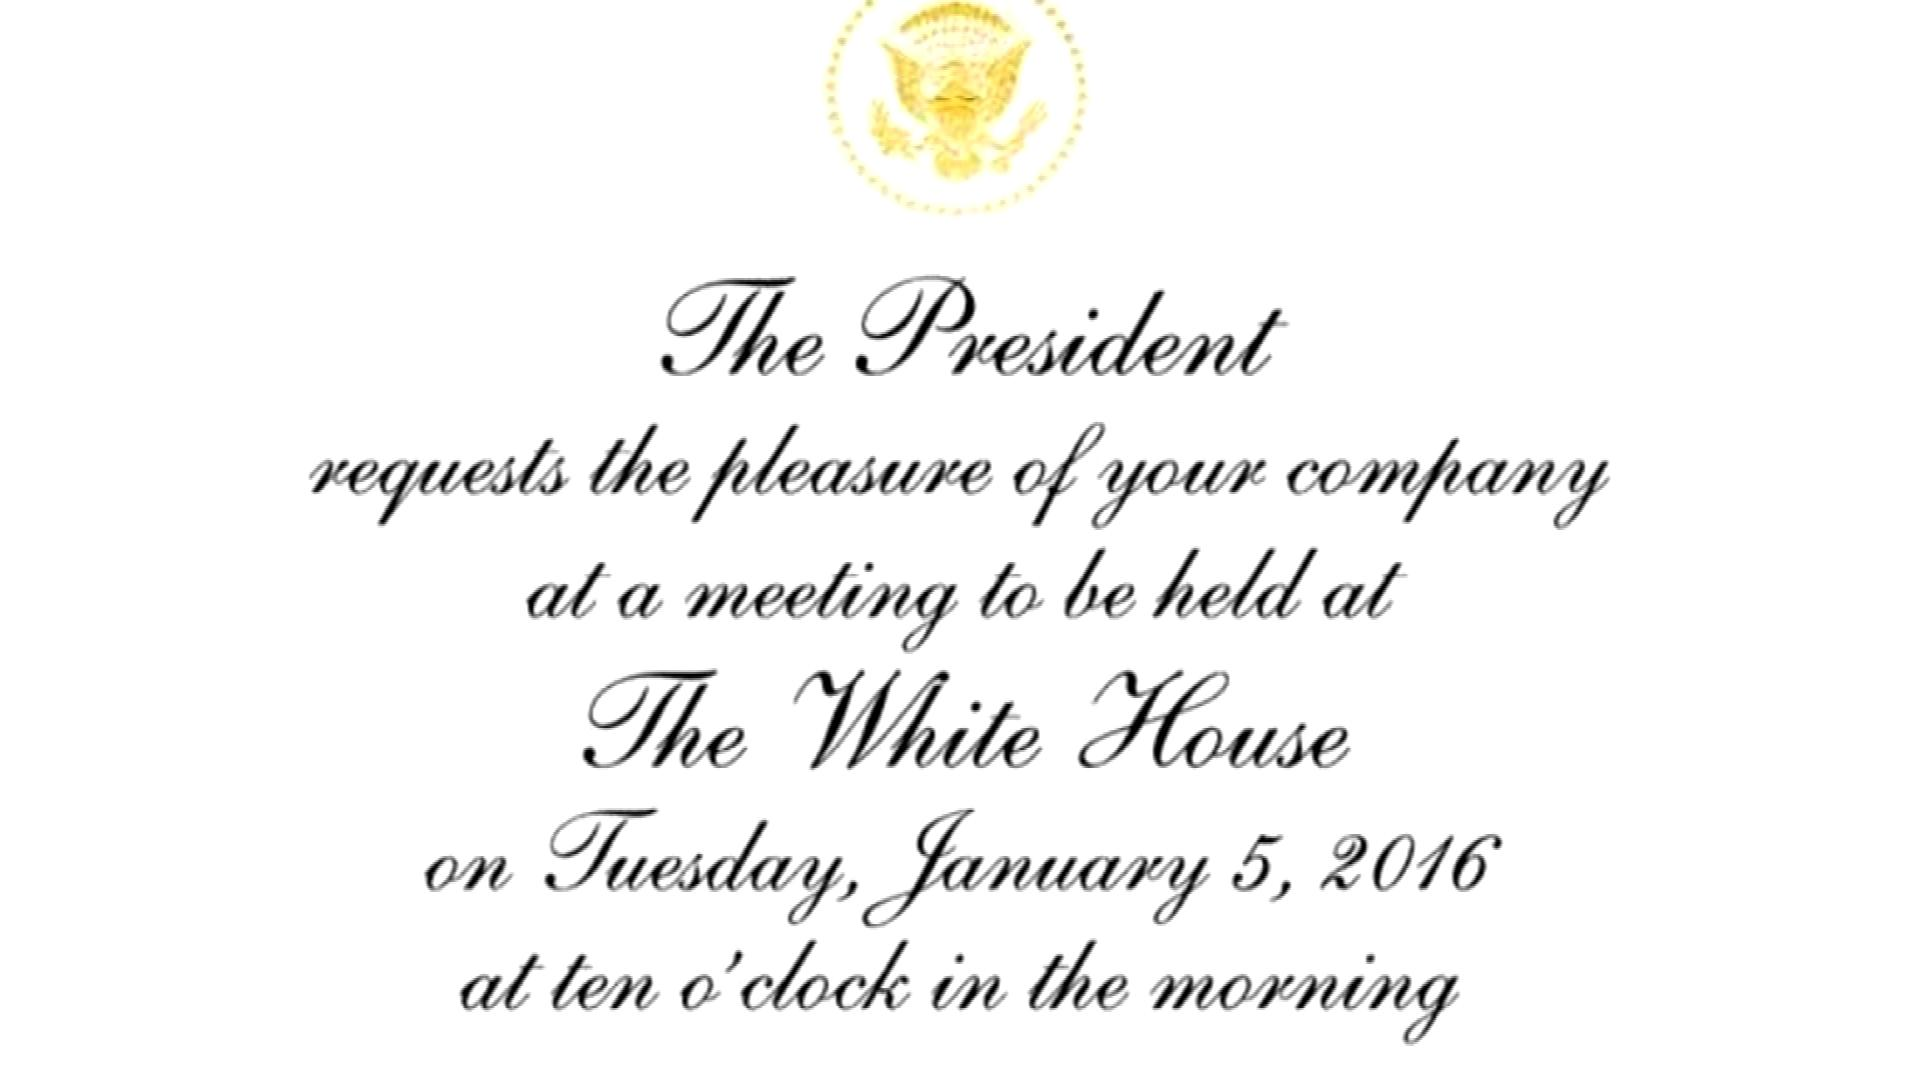 The White House's invitation (credit: CBS)